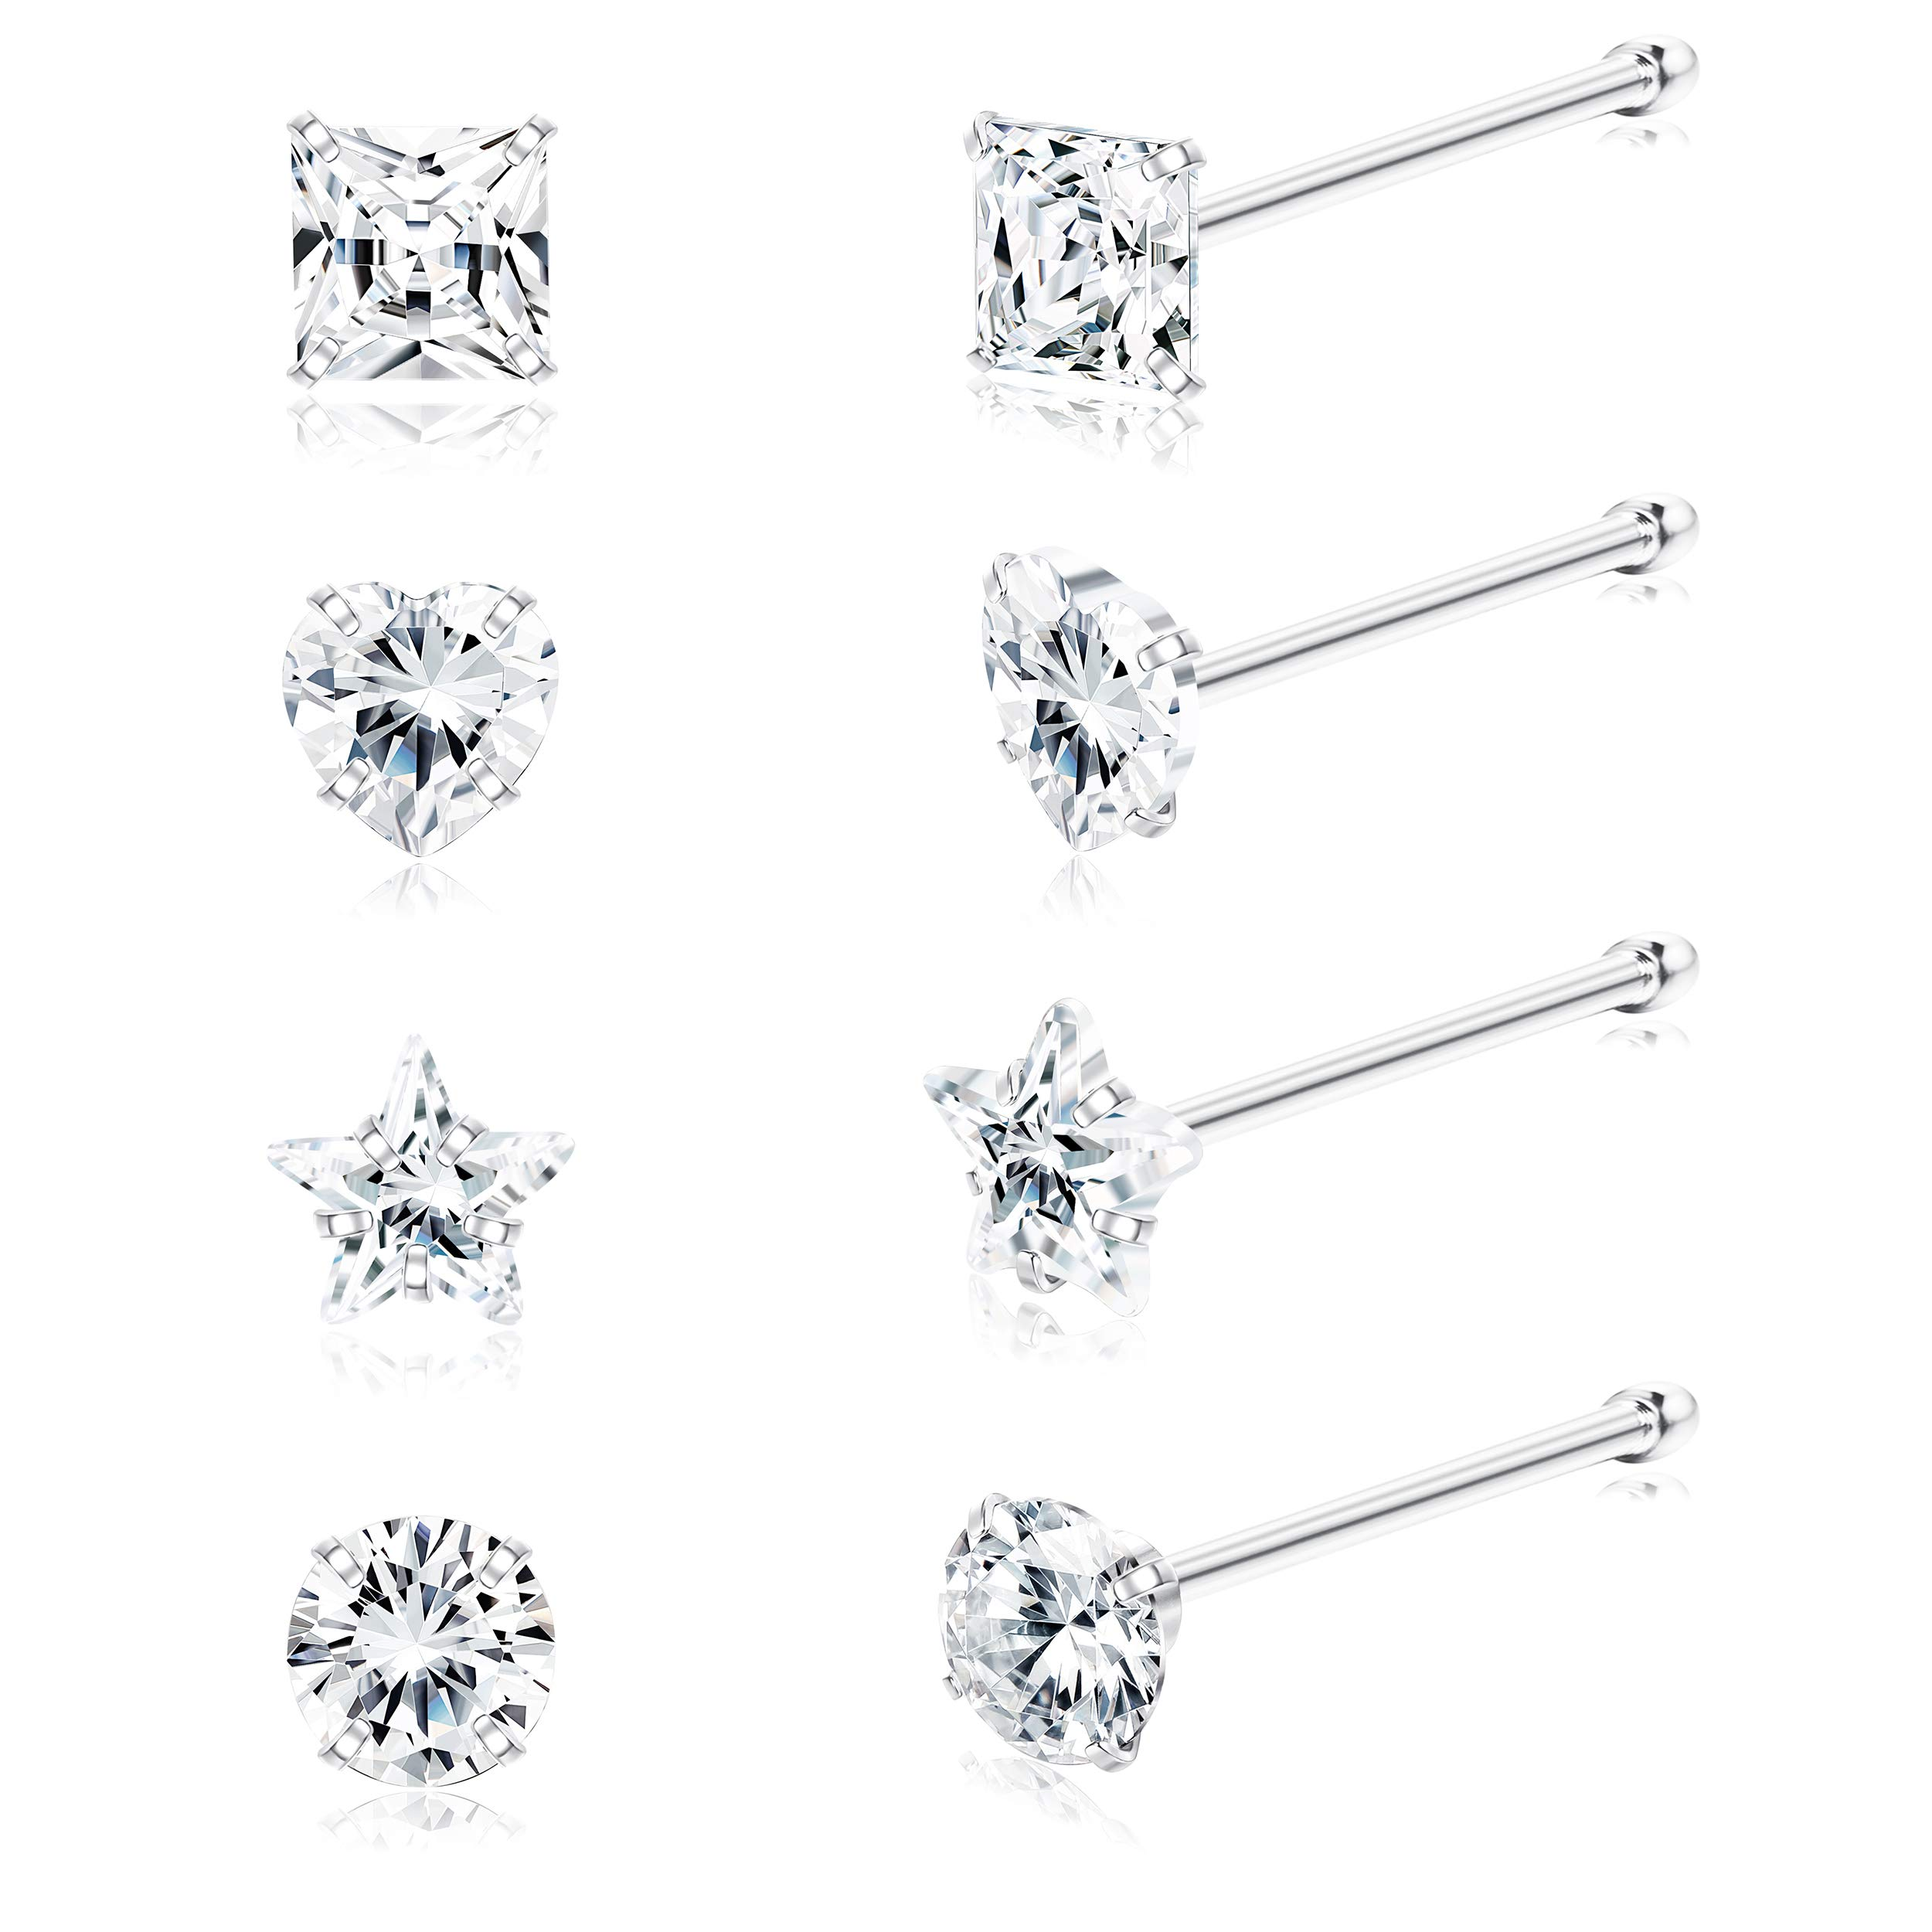 Sllaiss 8Pcs 22G Sterling Silver Nose Rings Studs 3mm Assorted Shapes CZ Inlaid Nose Body Piercing Jewelry Hypoallergenic by Sllaiss